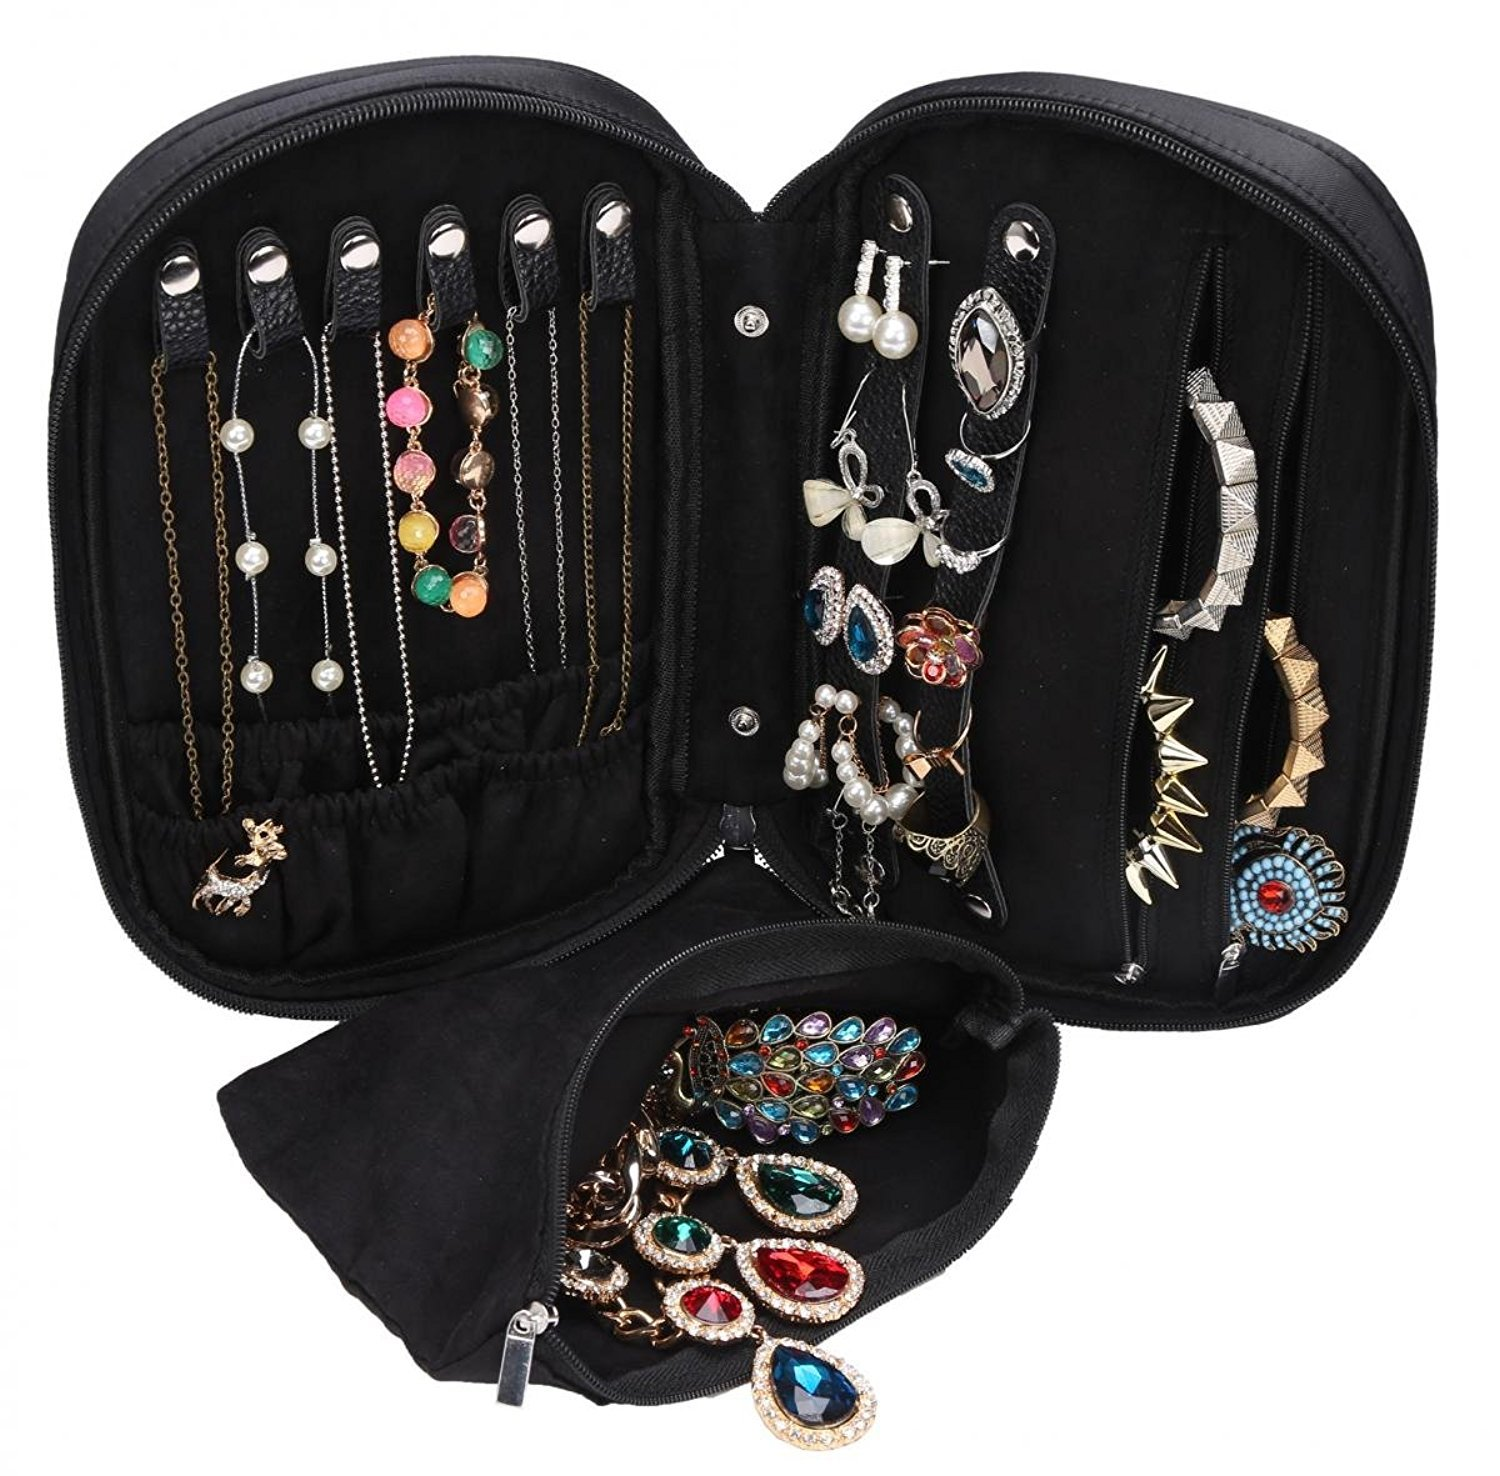 WODISON Zipper Carry-on Travel Jewelry Case Organizer with Removable Pouch Black MaxFly SYNCHKG099838